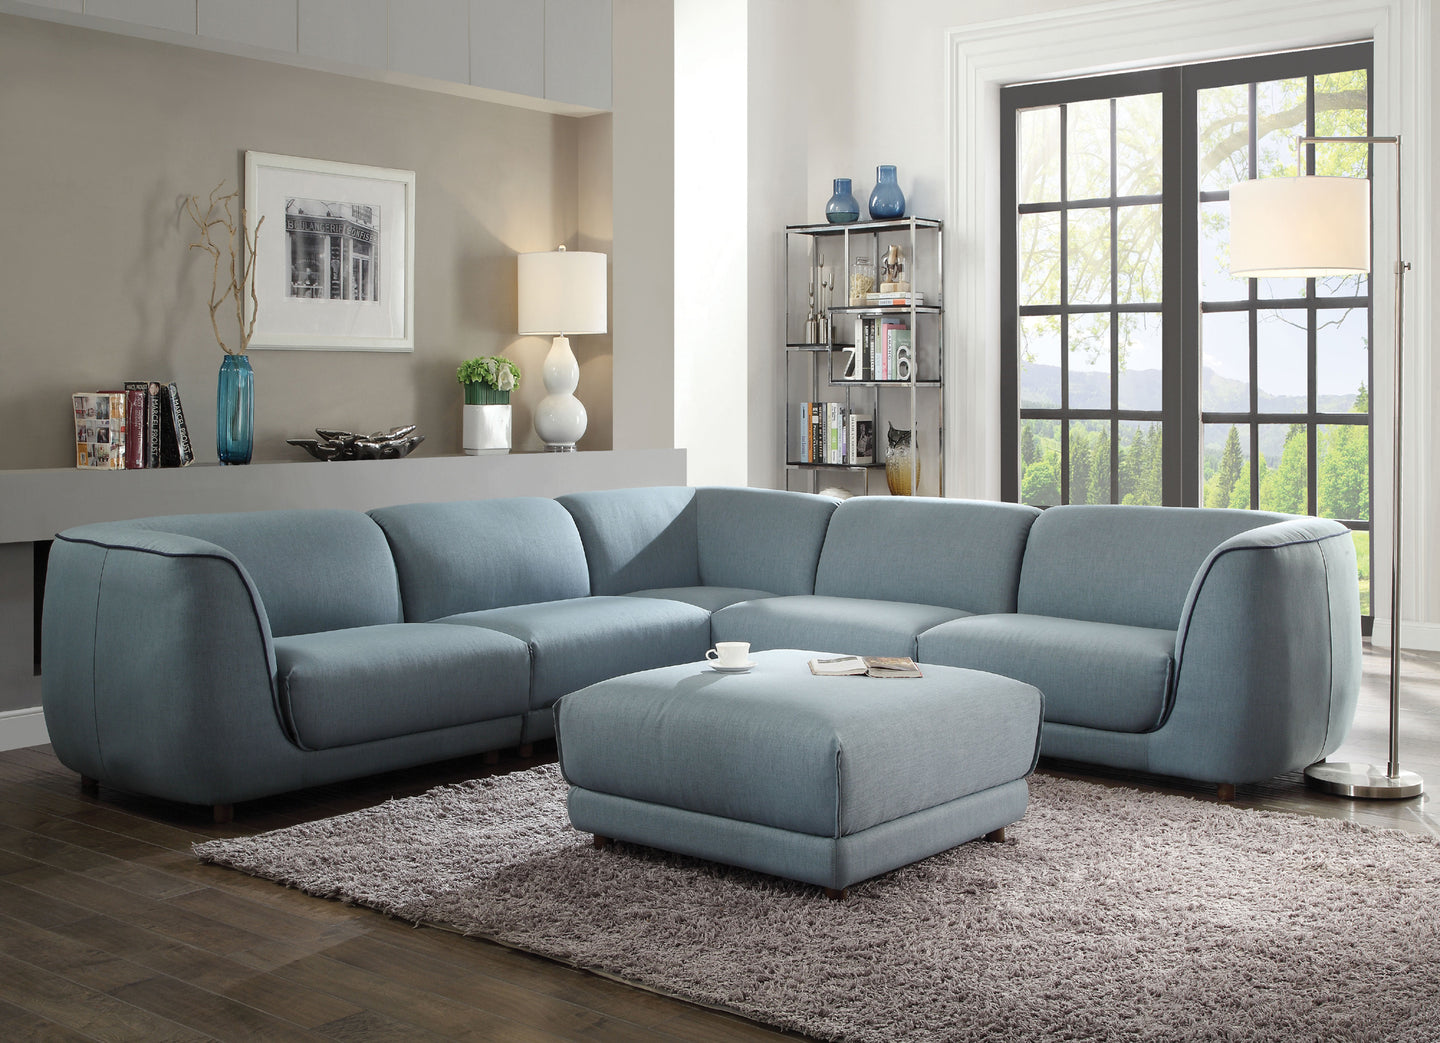 Acme 53725 Adina 5 Pieces Light Blue Fabric Sectional Sofa Set